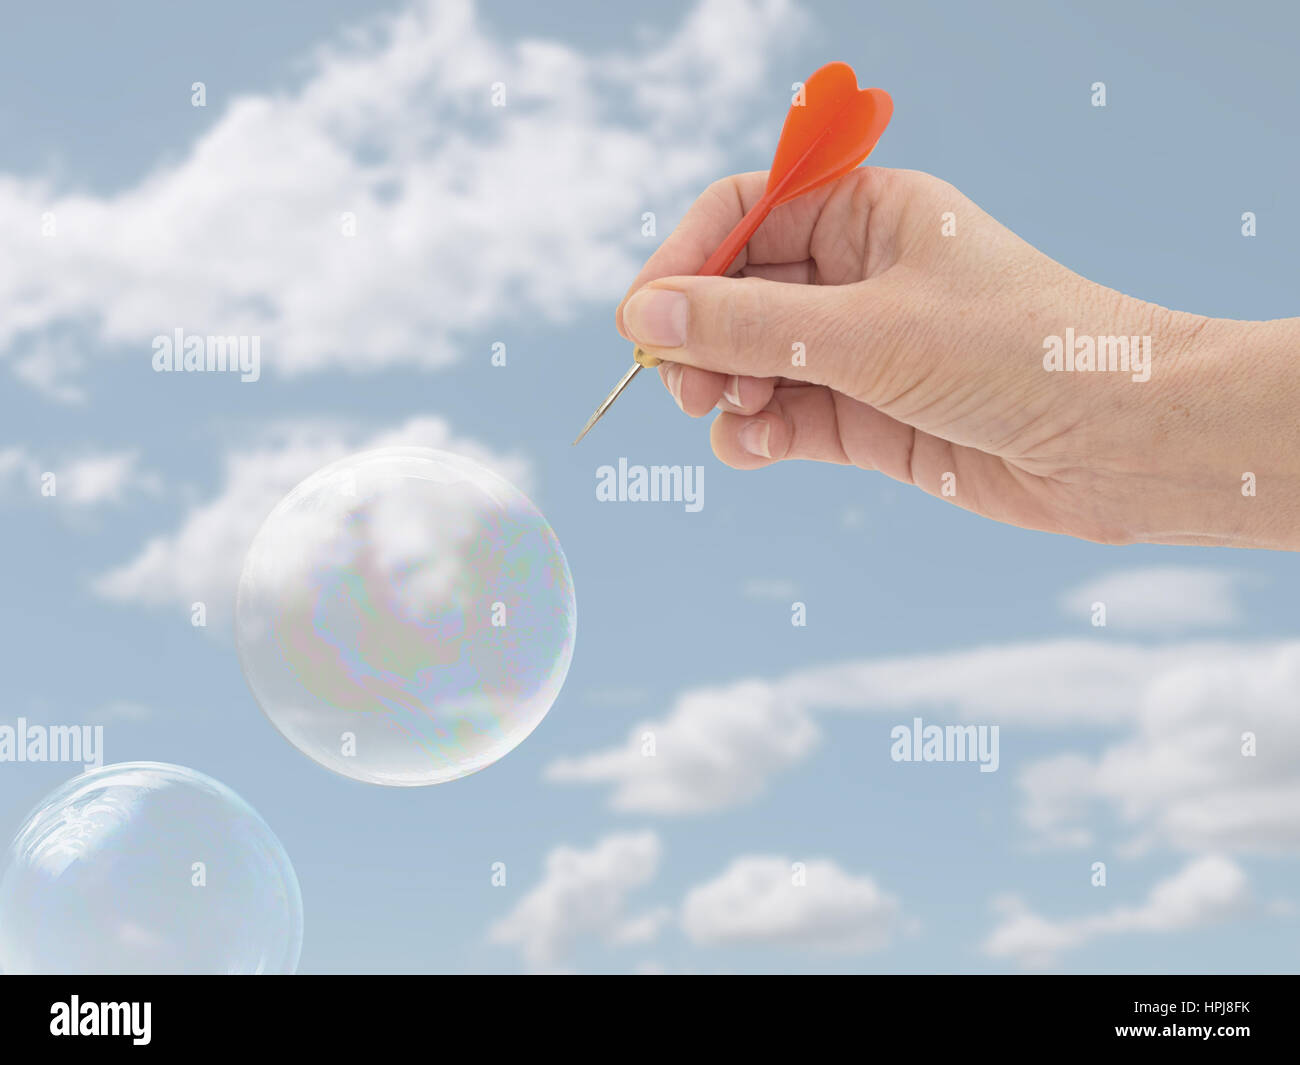 Burst the bubble concept. Financial, business or general concept, metaphor. Woman's hand. - Stock Image